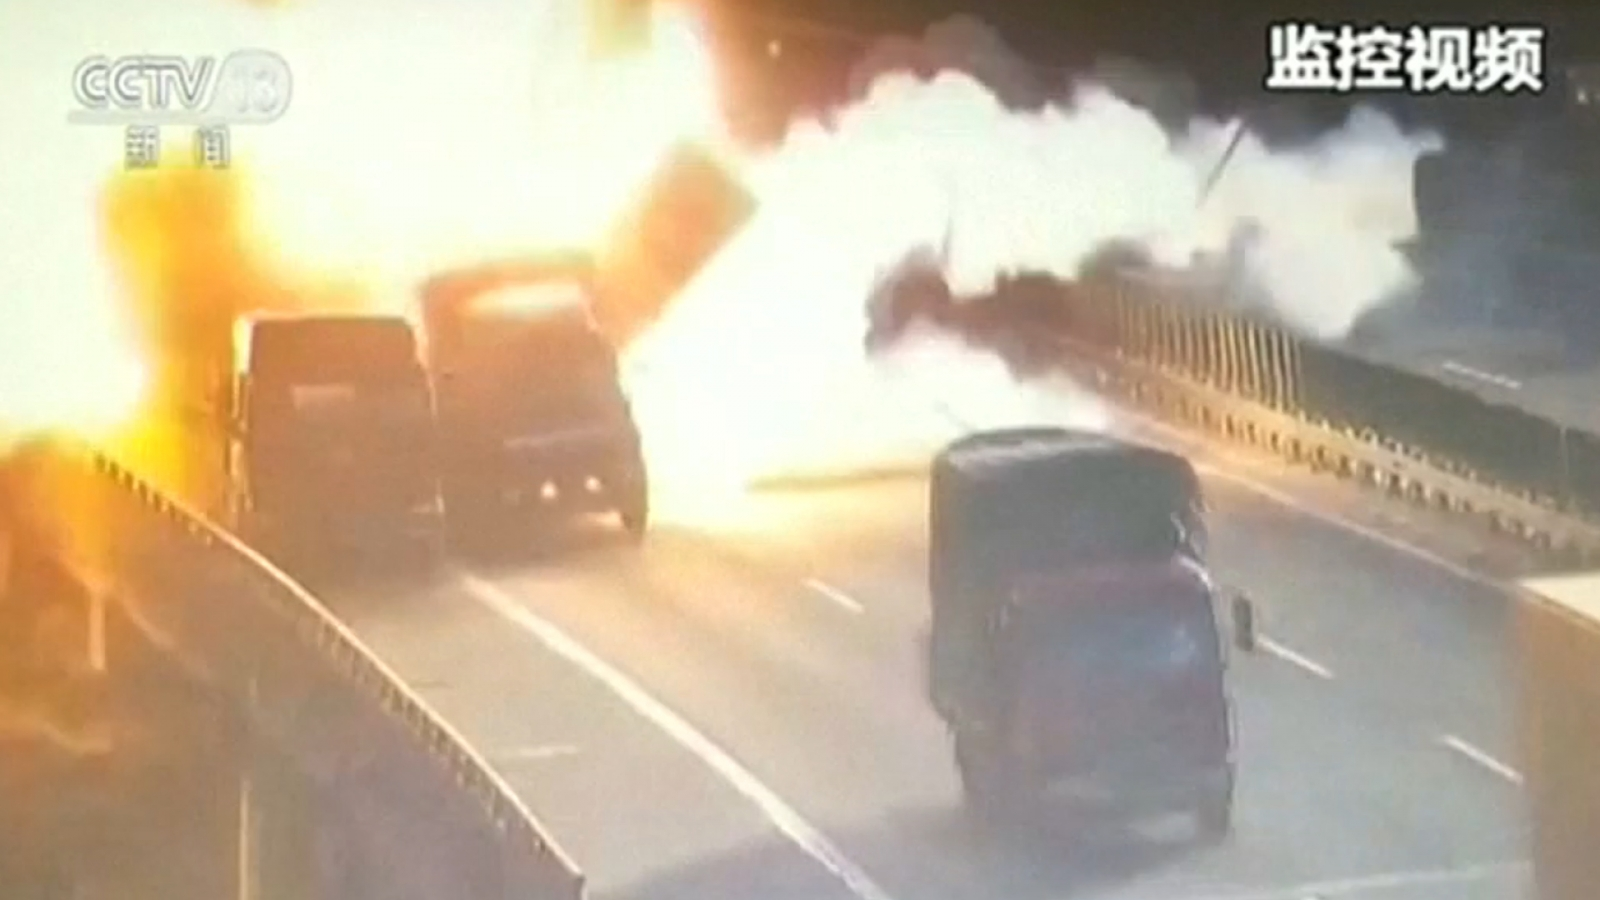 Dramatic Movie Style Truck Blast Captured On CCTV In China